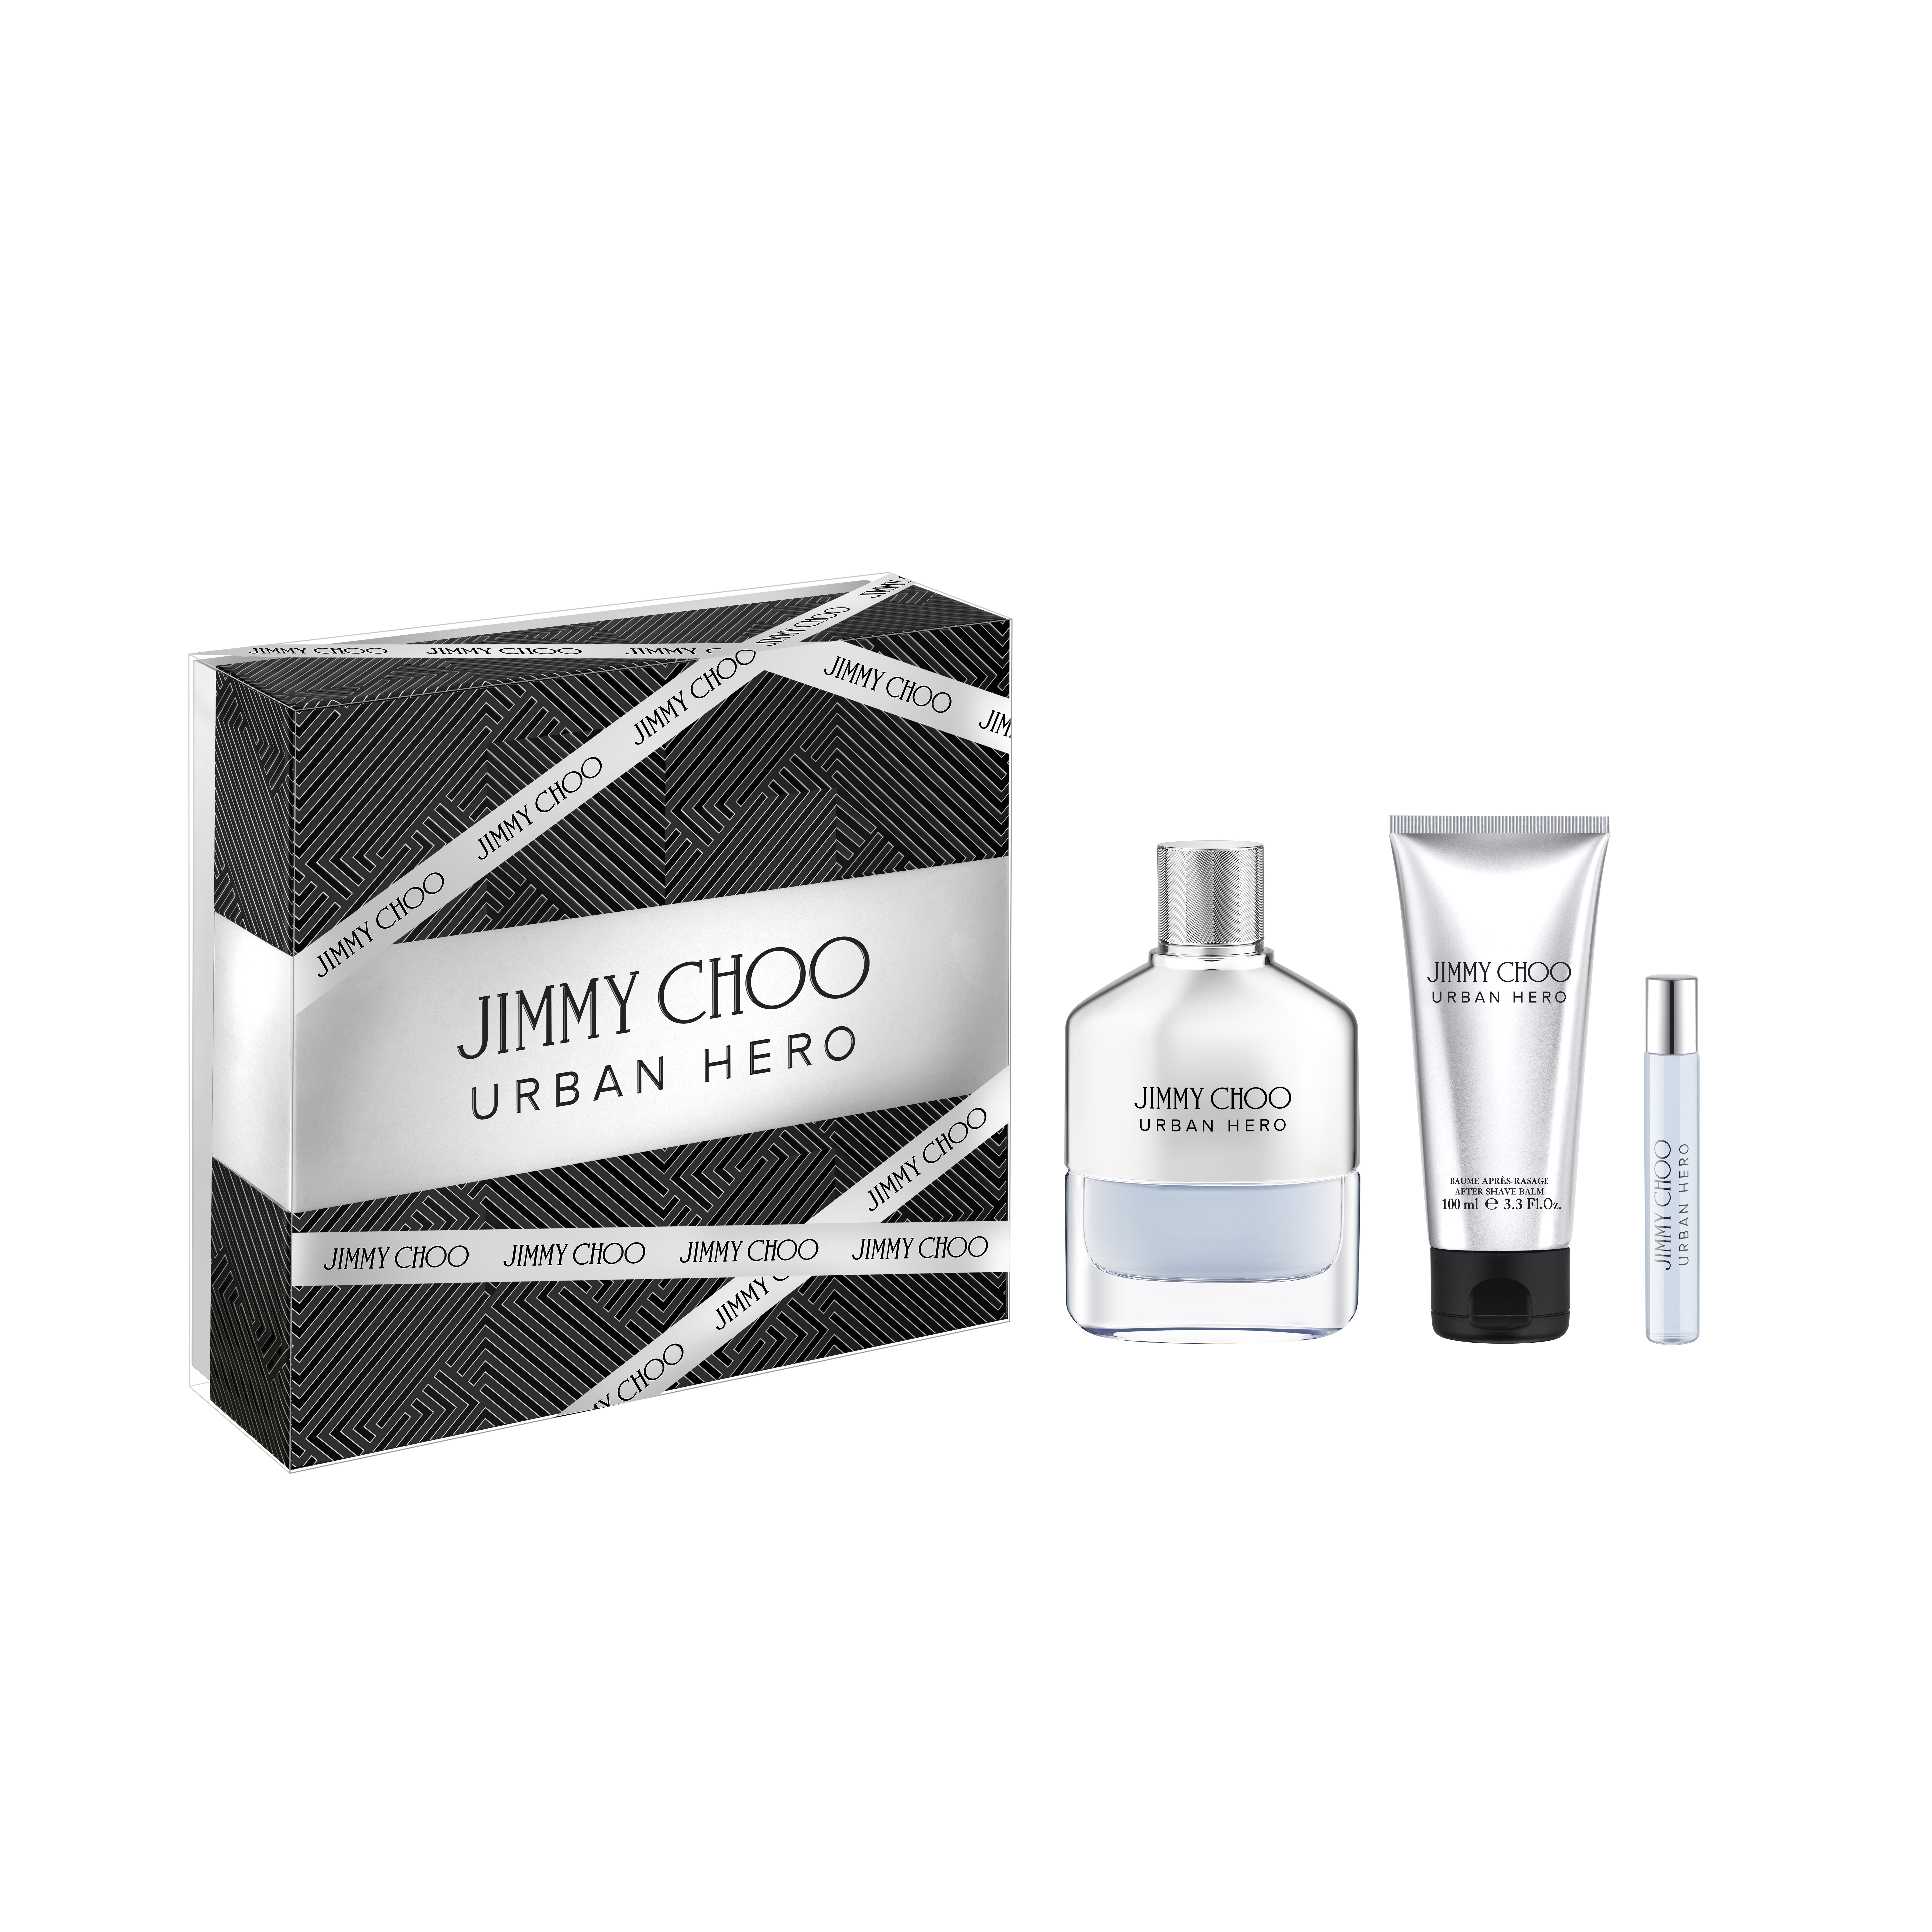 Jimmy Choo Urban Hero 100ml edp + 7.5ml travel spray + 100ml after shave balsam